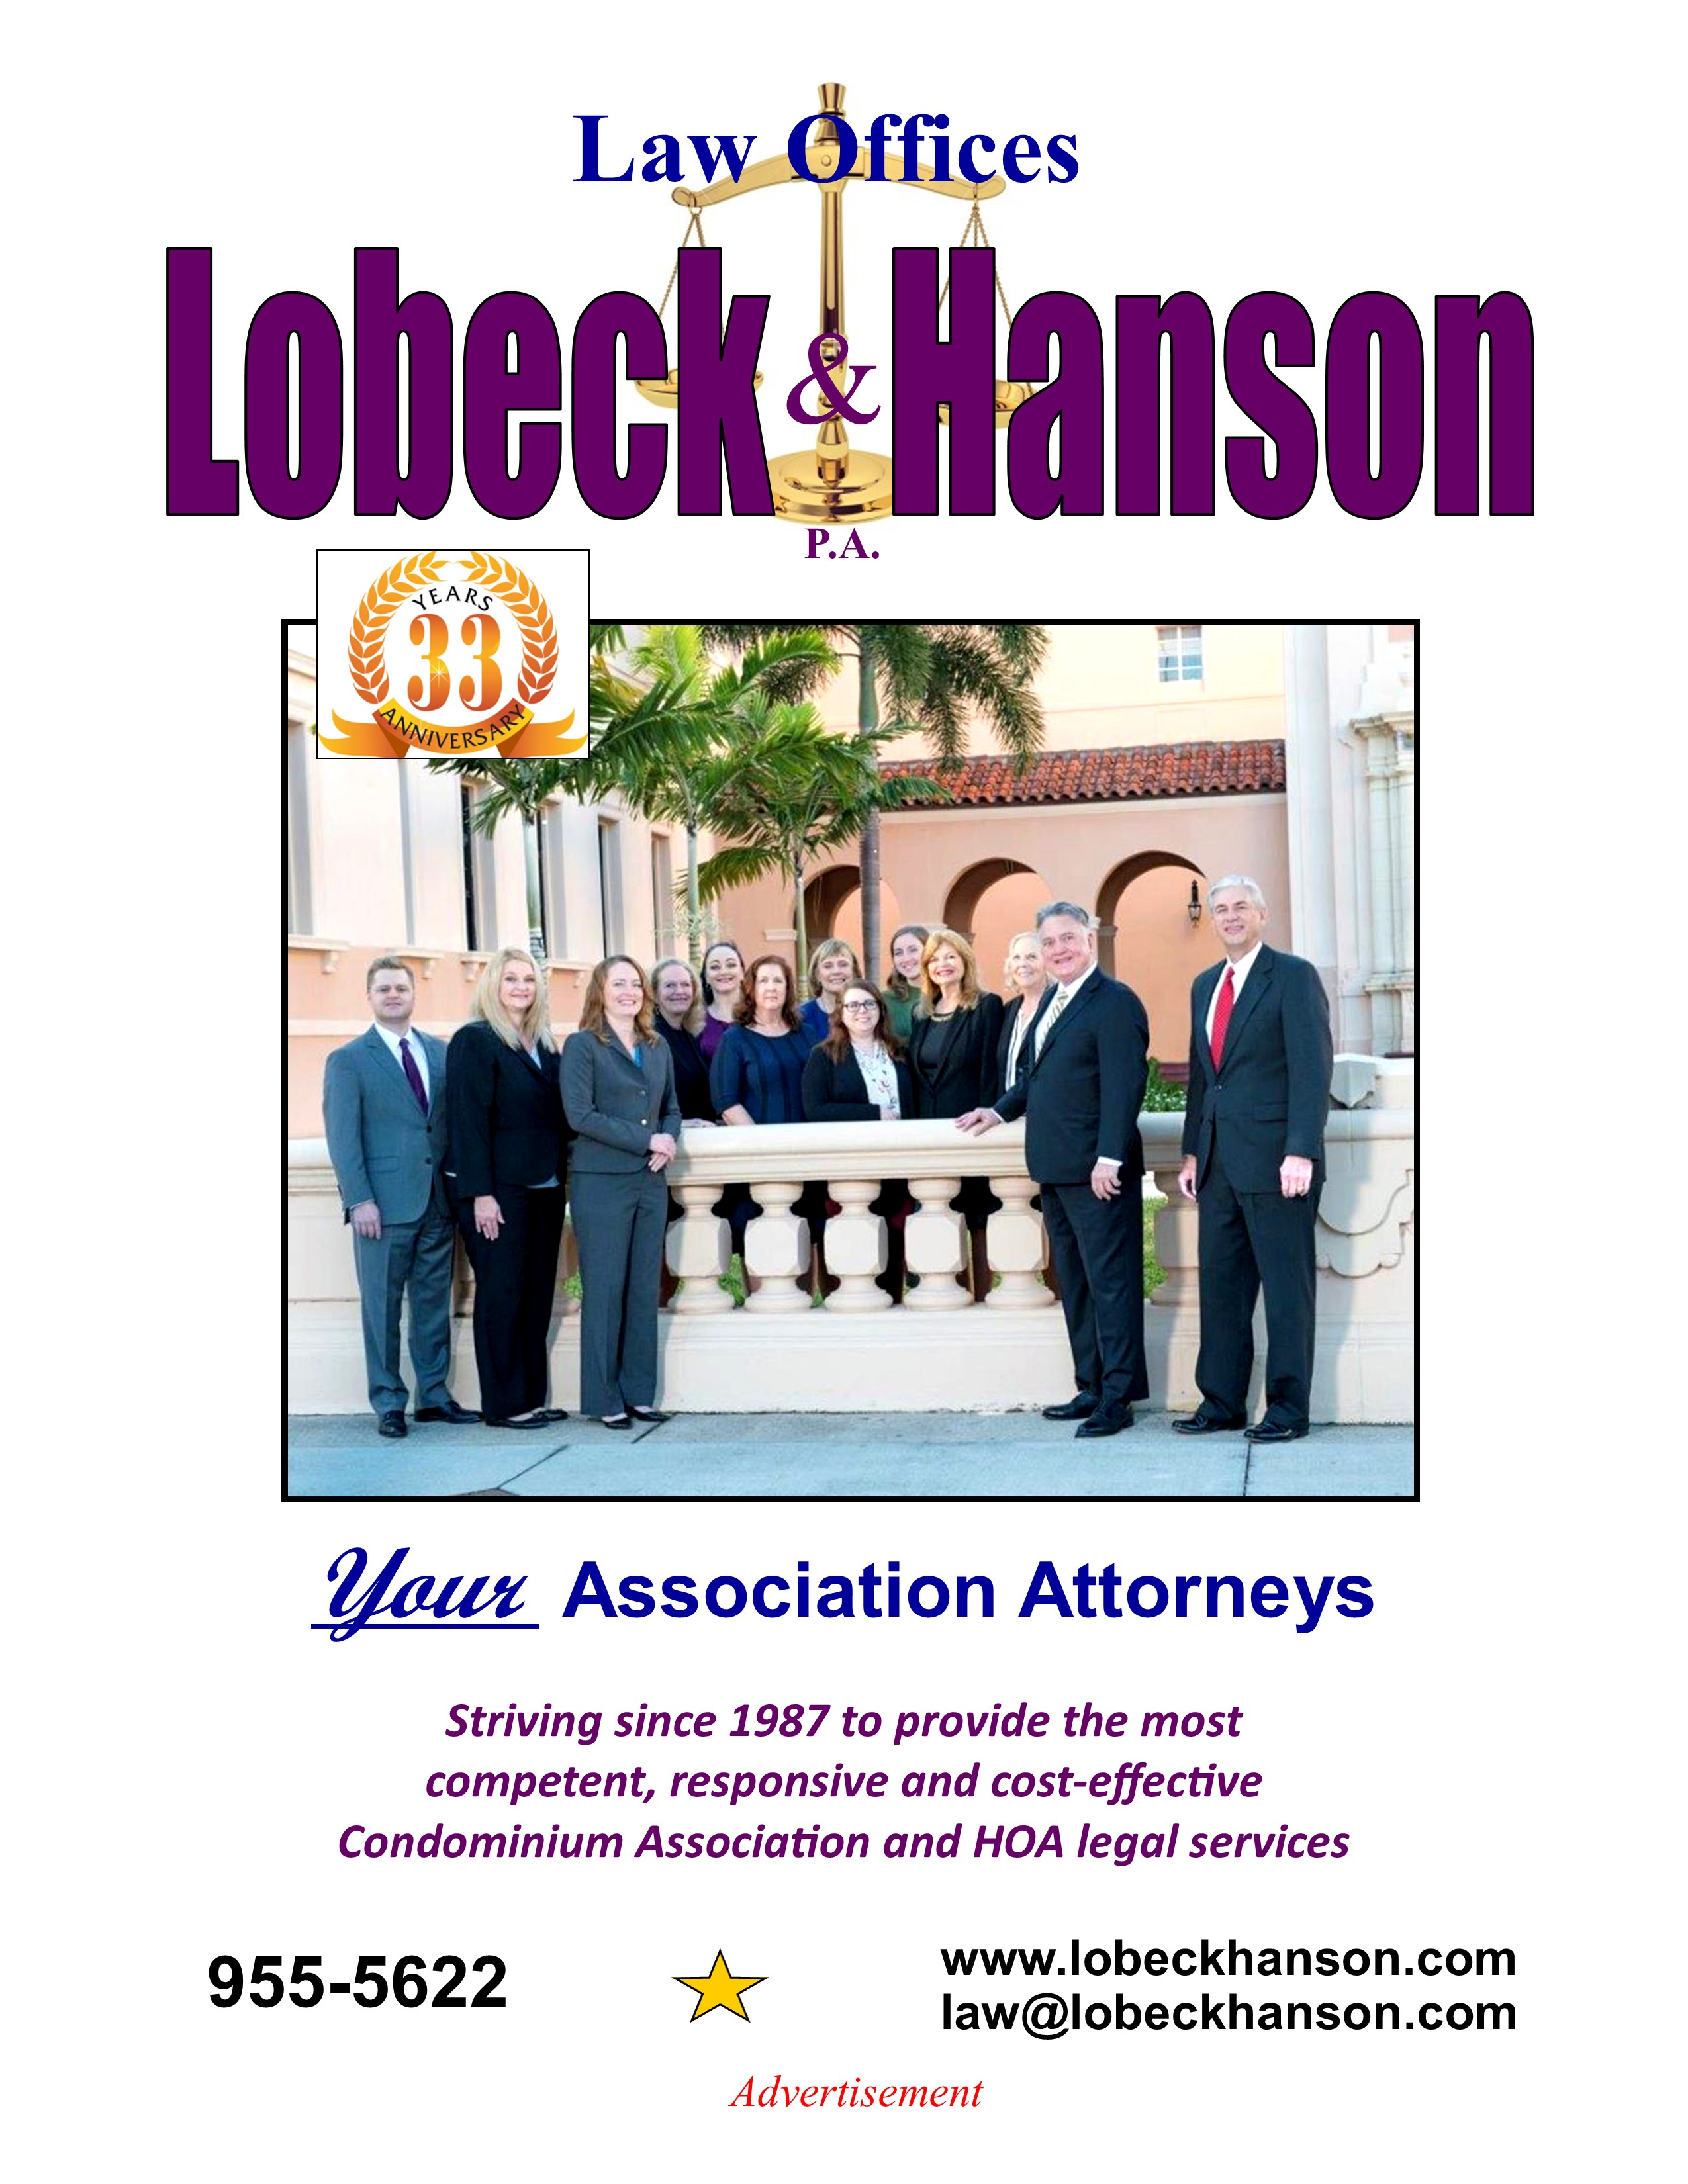 For Information About Lobeck & Hanson